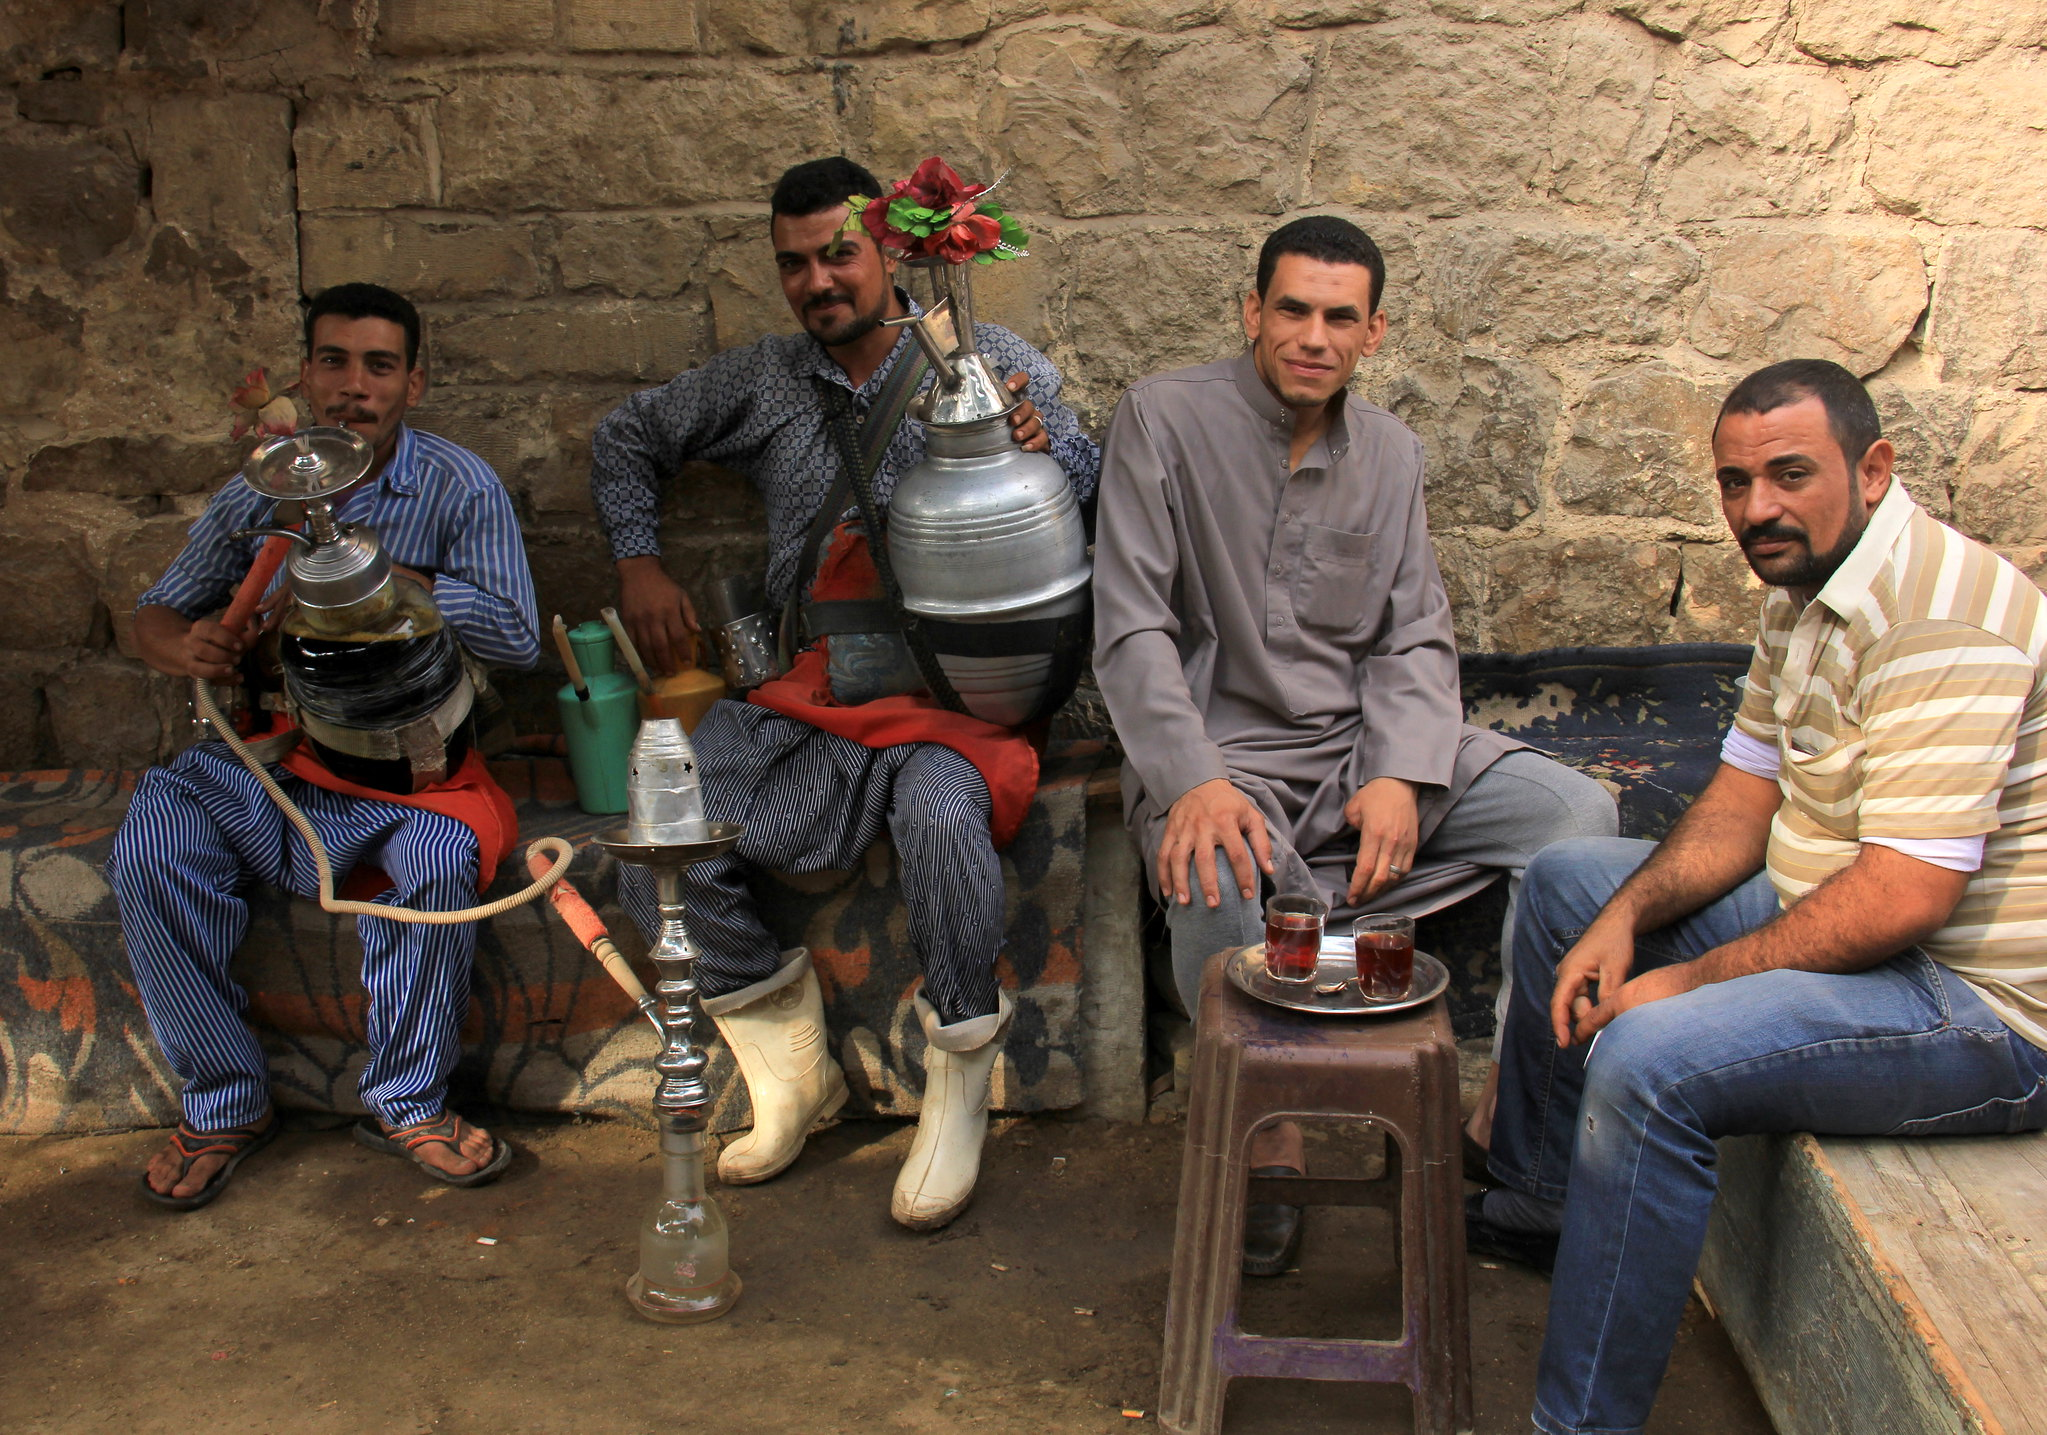 Karkade is a popular drink in Egypt